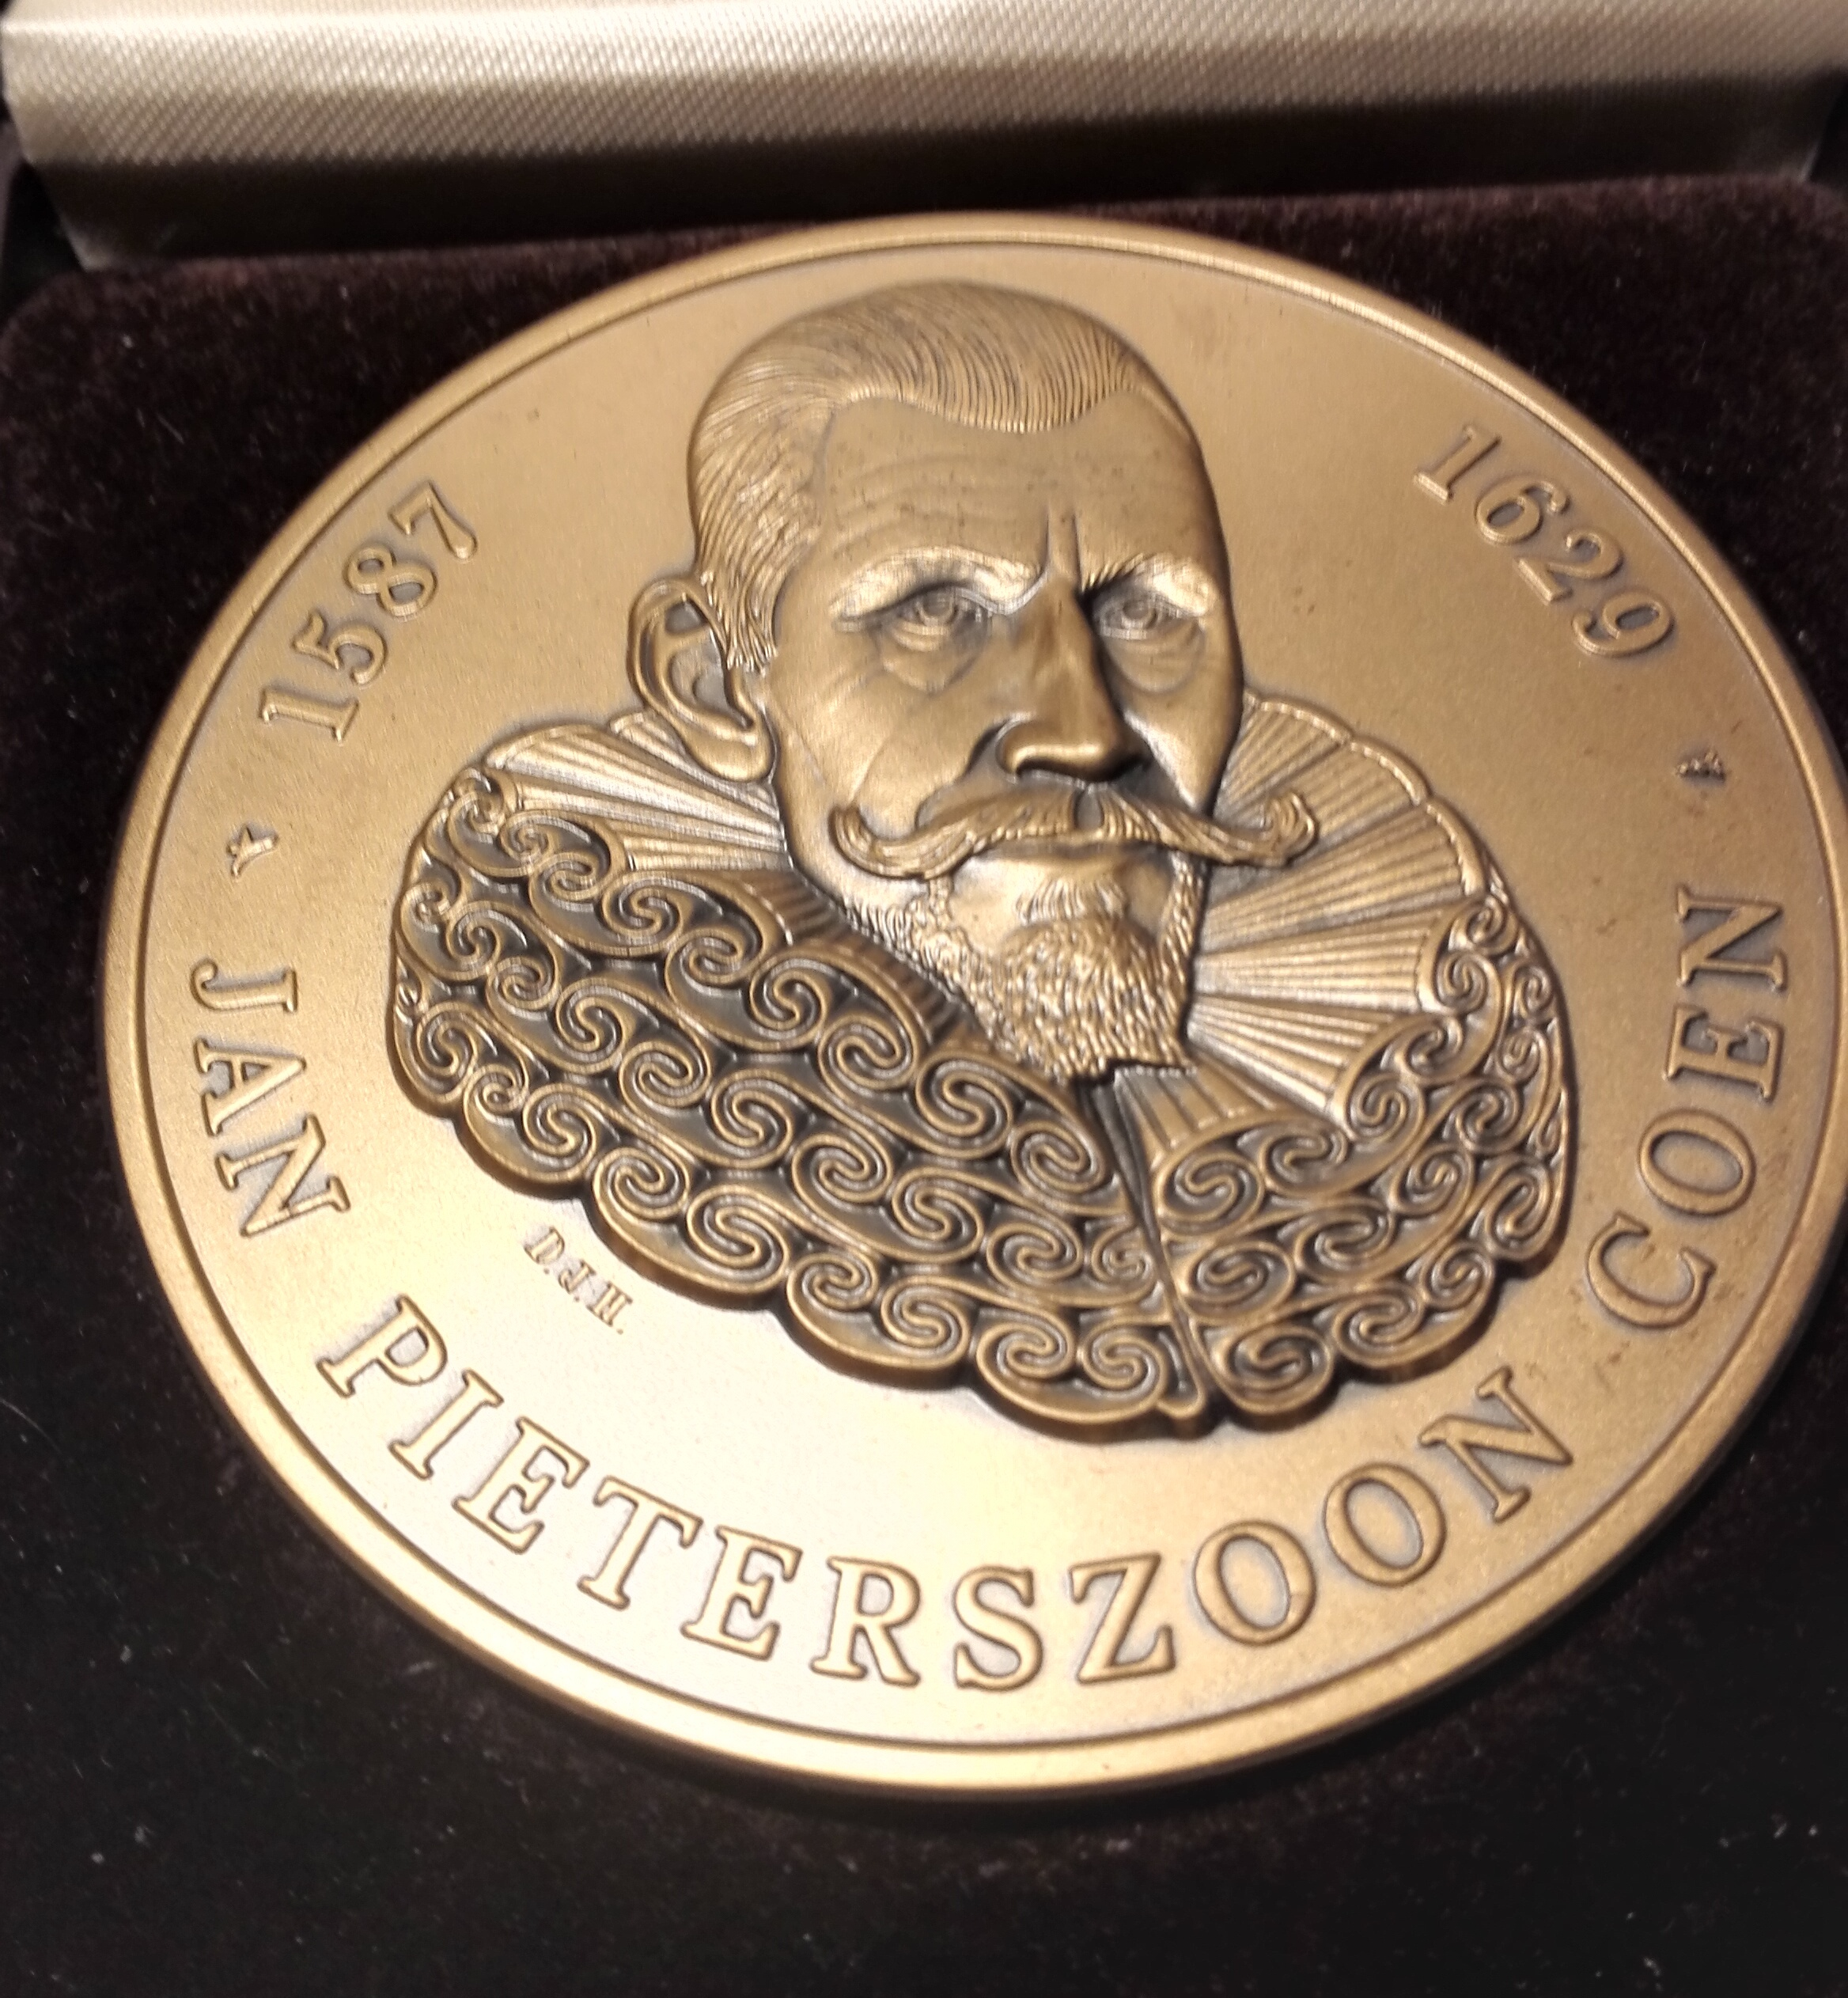 JAN PIETERSZOON COEN 1587-1629 - Bronze Medal